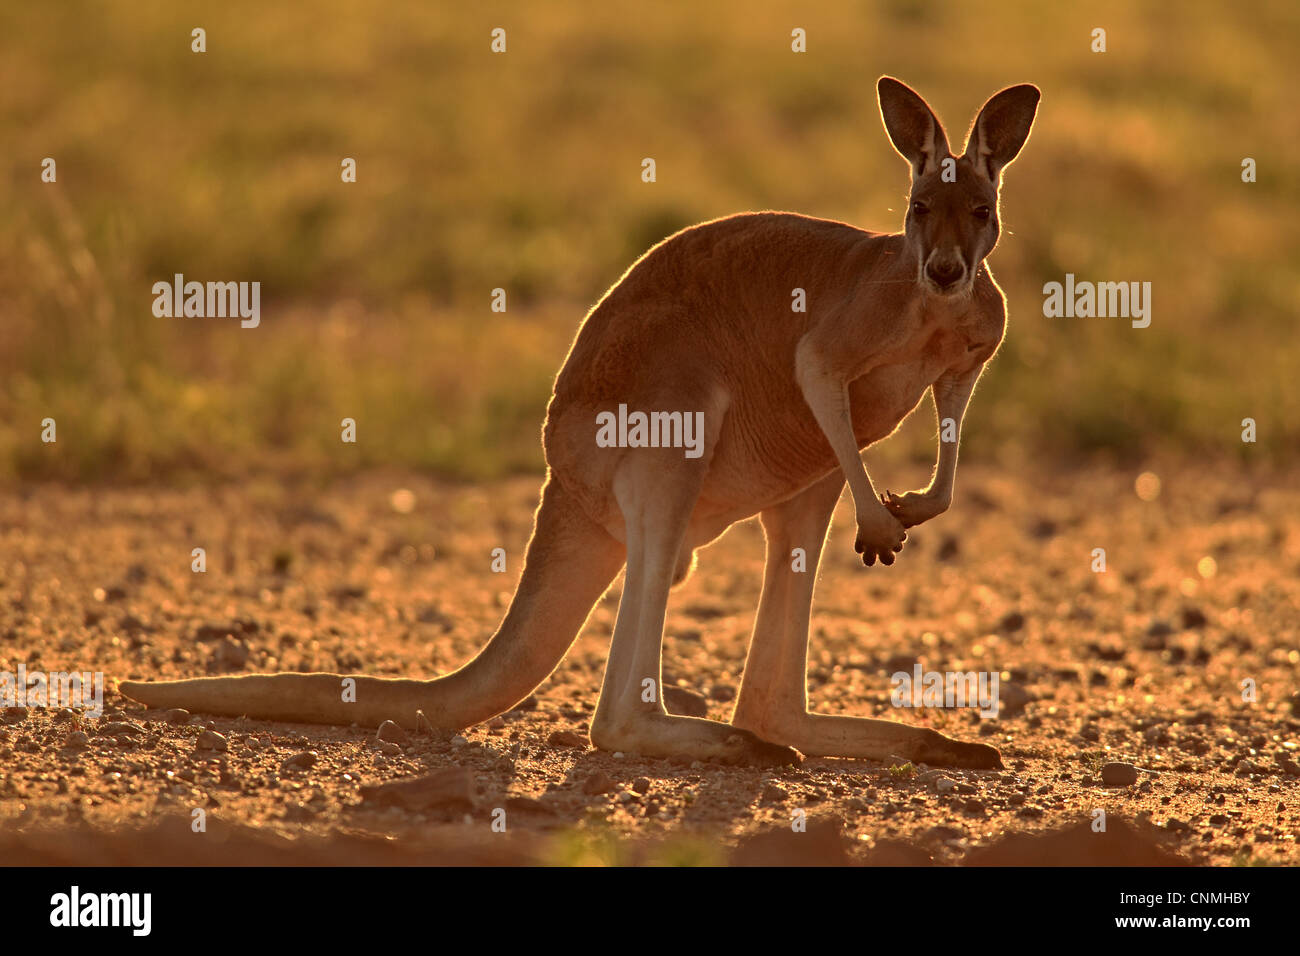 Red kangaroo standing next to person